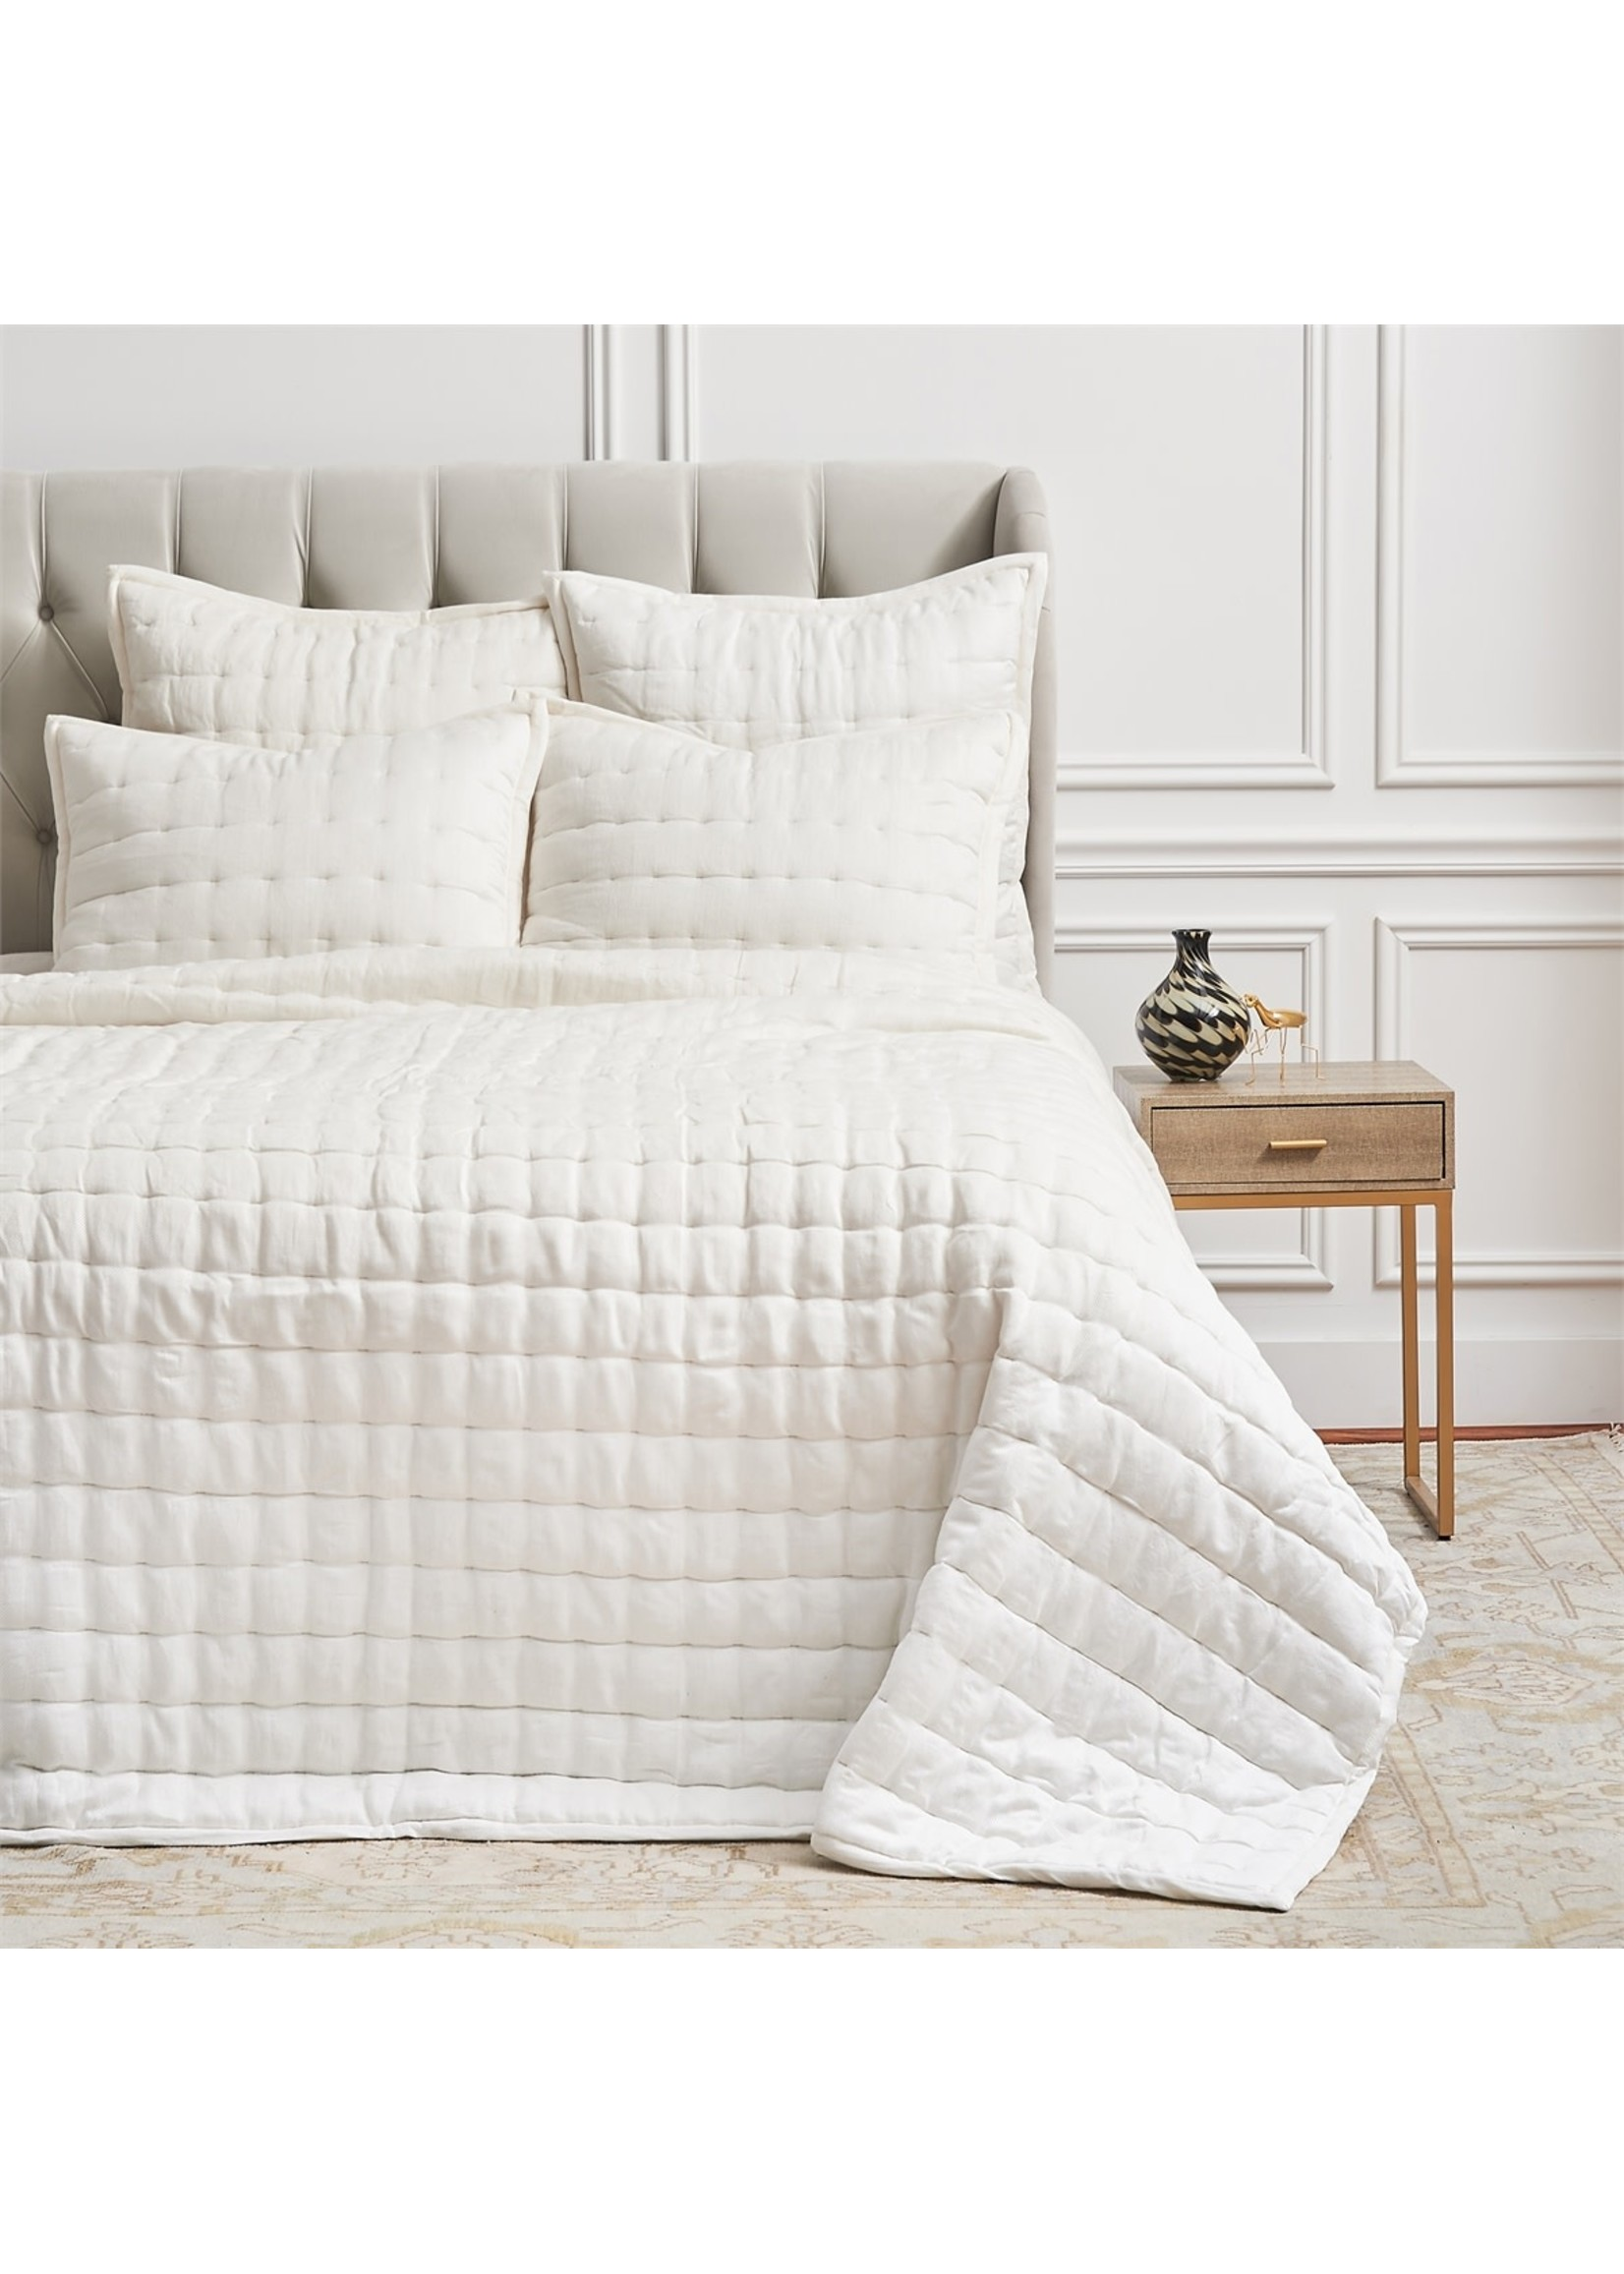 KING, TINSLEY  DOVE QUILT